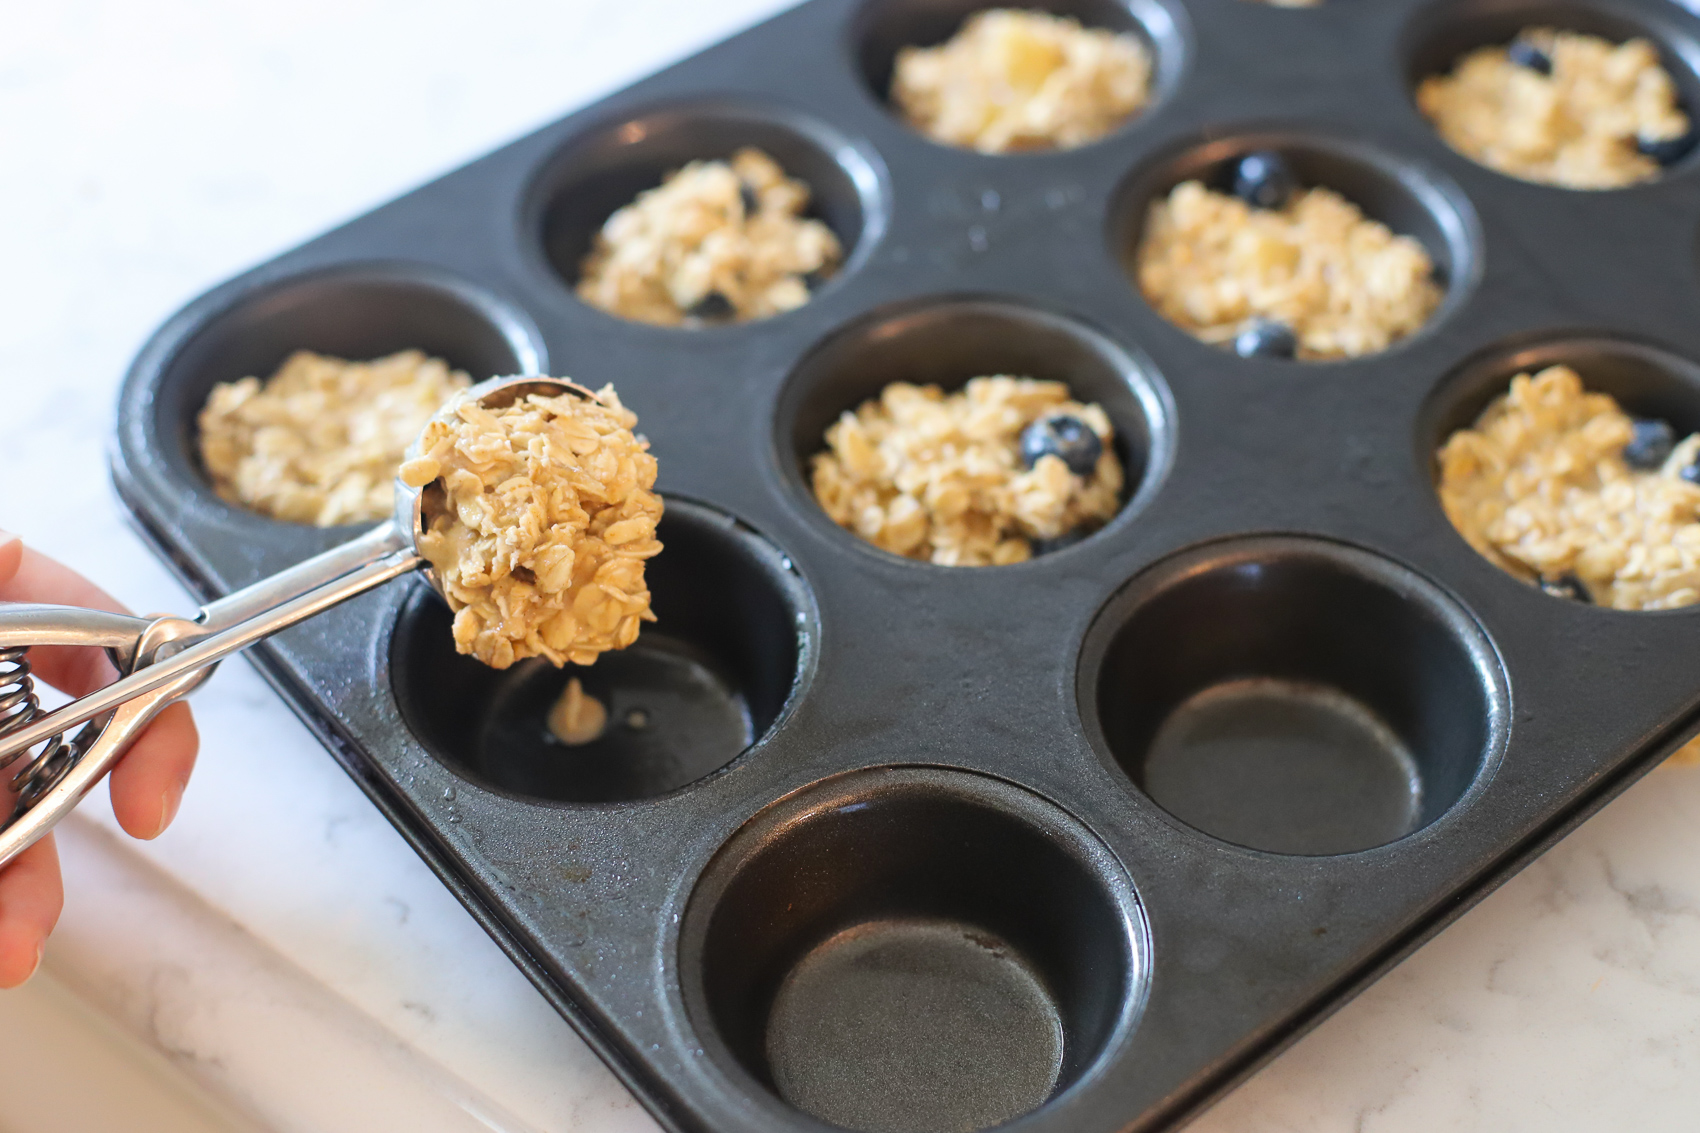 Oatmeal batter in muffin pan